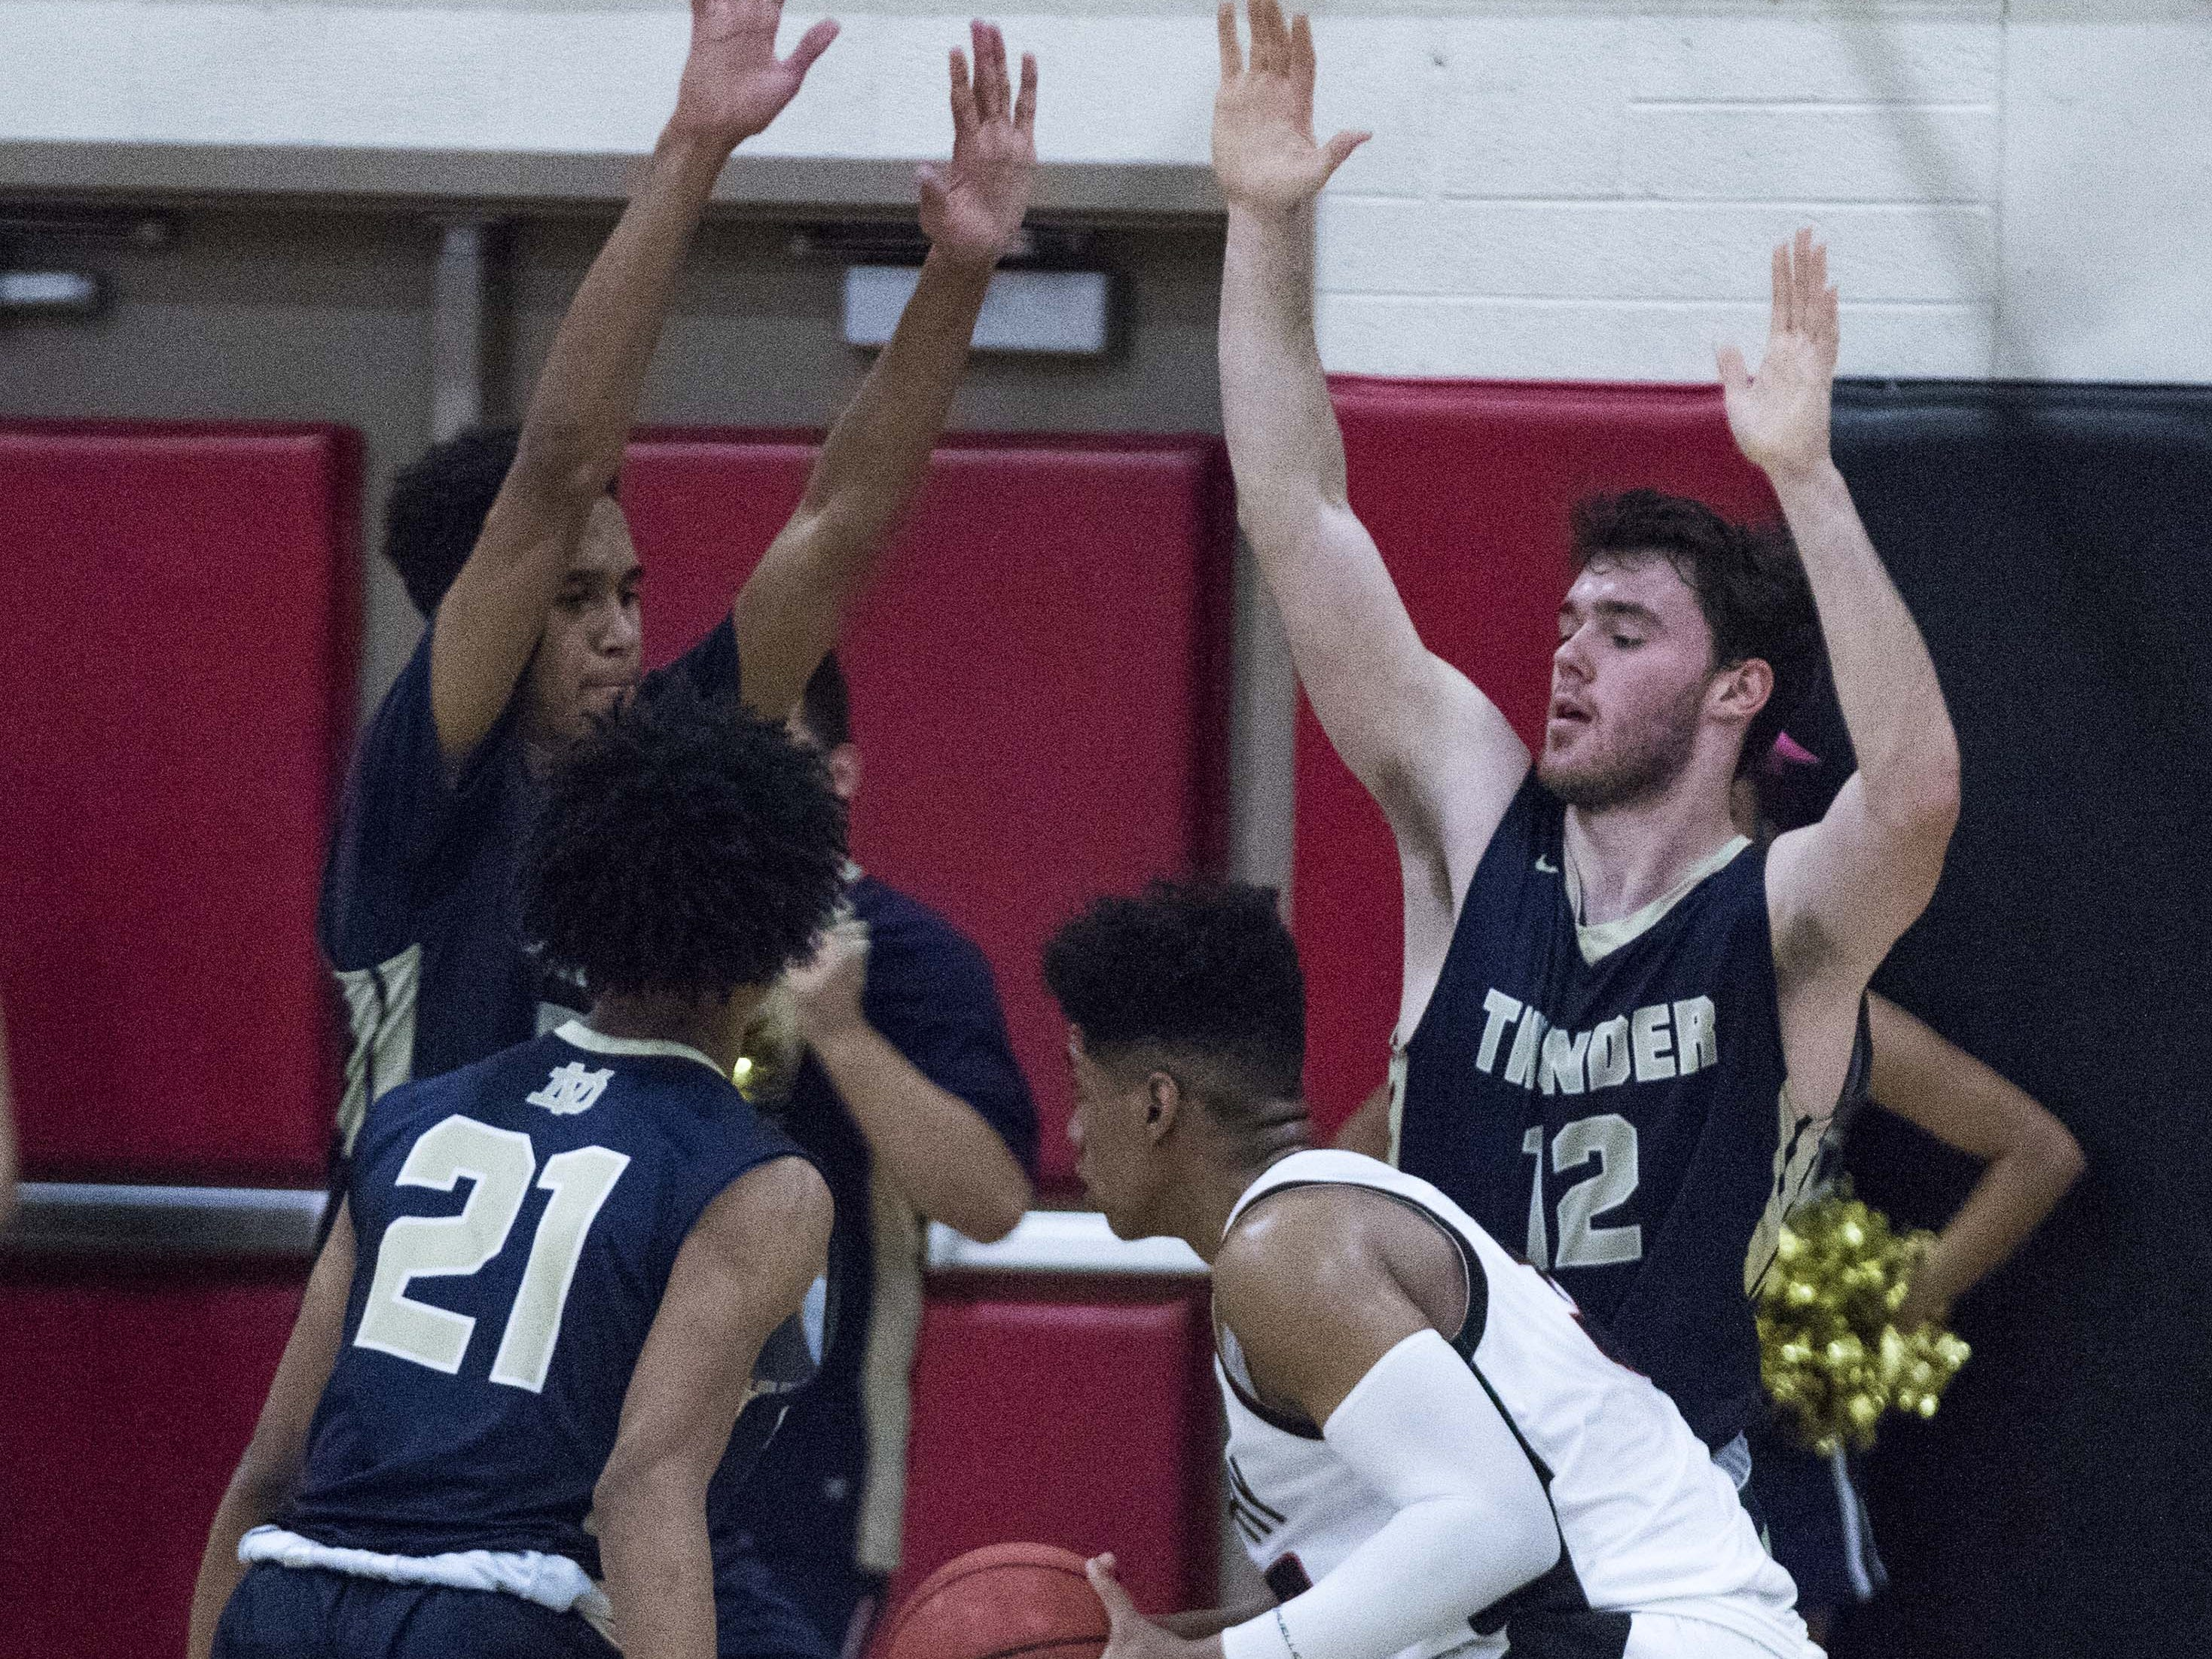 Desert Vista plays tough defense on Brophy's Joe Feeney (32) during the first half of their game in Phoenix, Thursday, Feb .14,  2019.